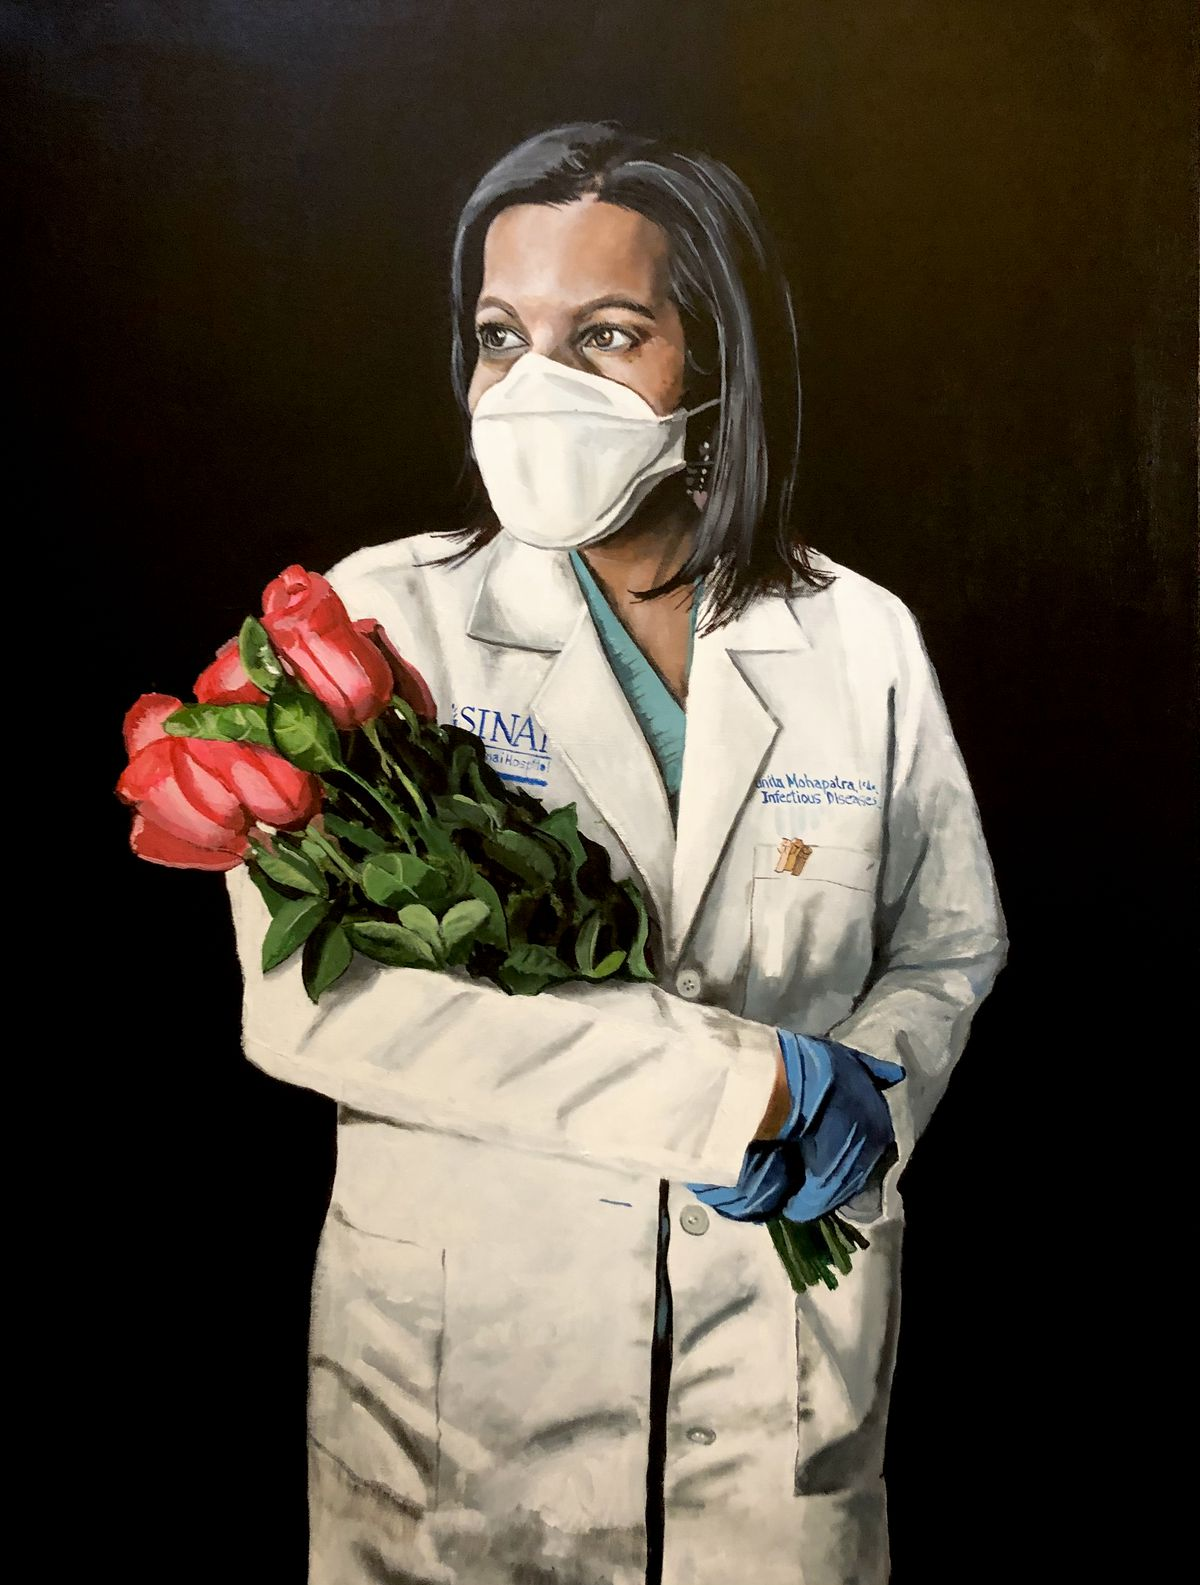 """Mount Sinai infectious disease specialist Dr. Sunita Mohapatra, painted by artist Phil Gayter. He researched the symbolism of roses for this portrait' deep pink represents """"thankfulness,"""" Gayter said."""